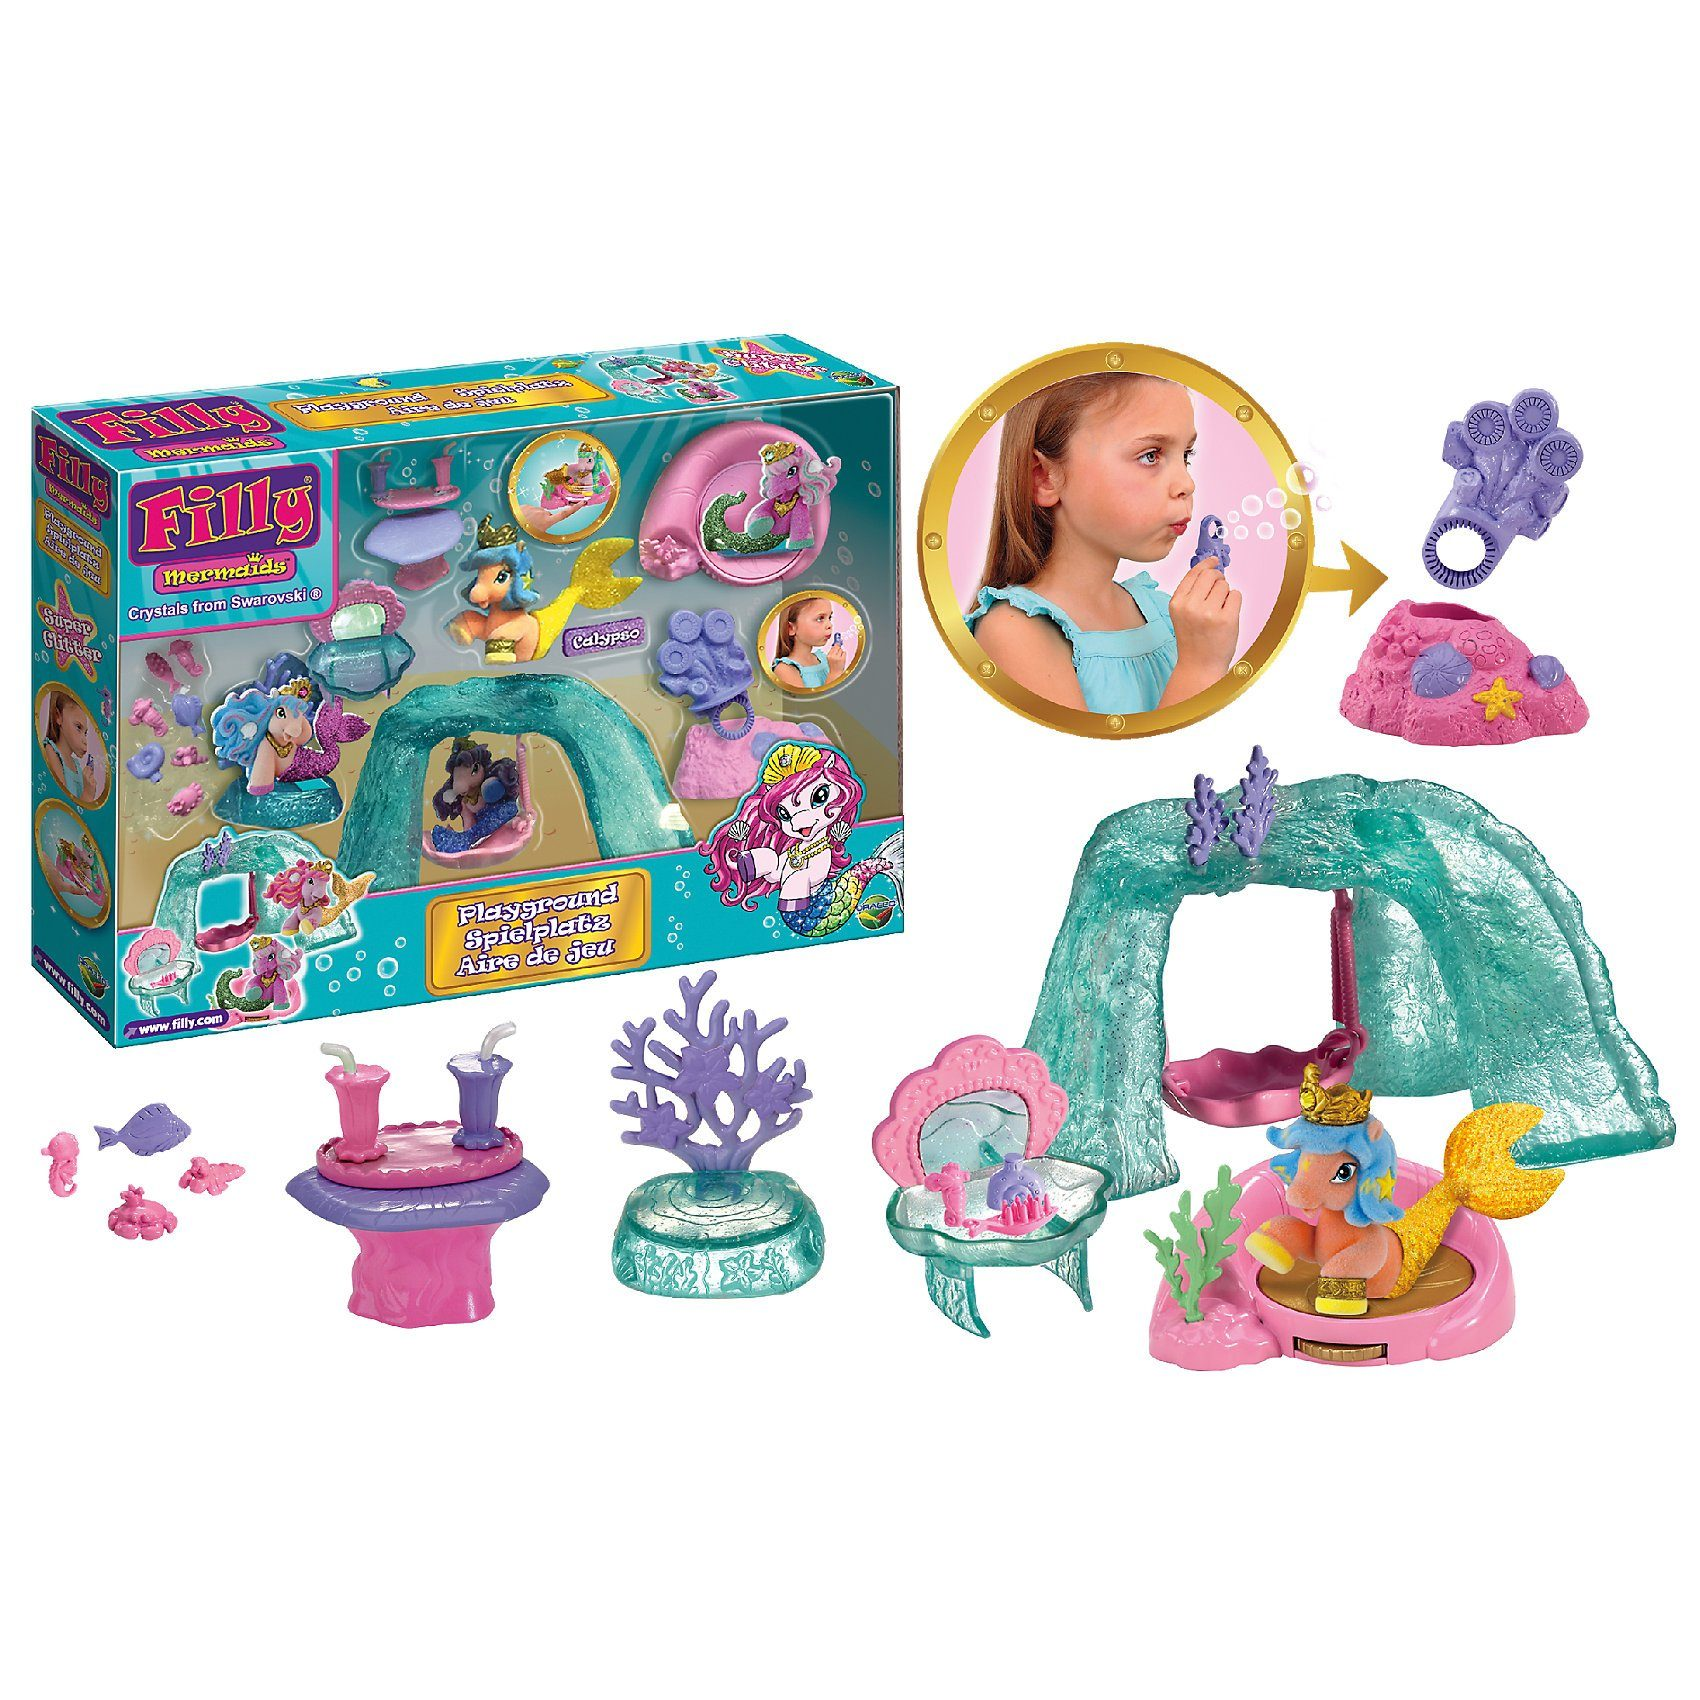 Dracco Filly Mermaid Spielplatz Set